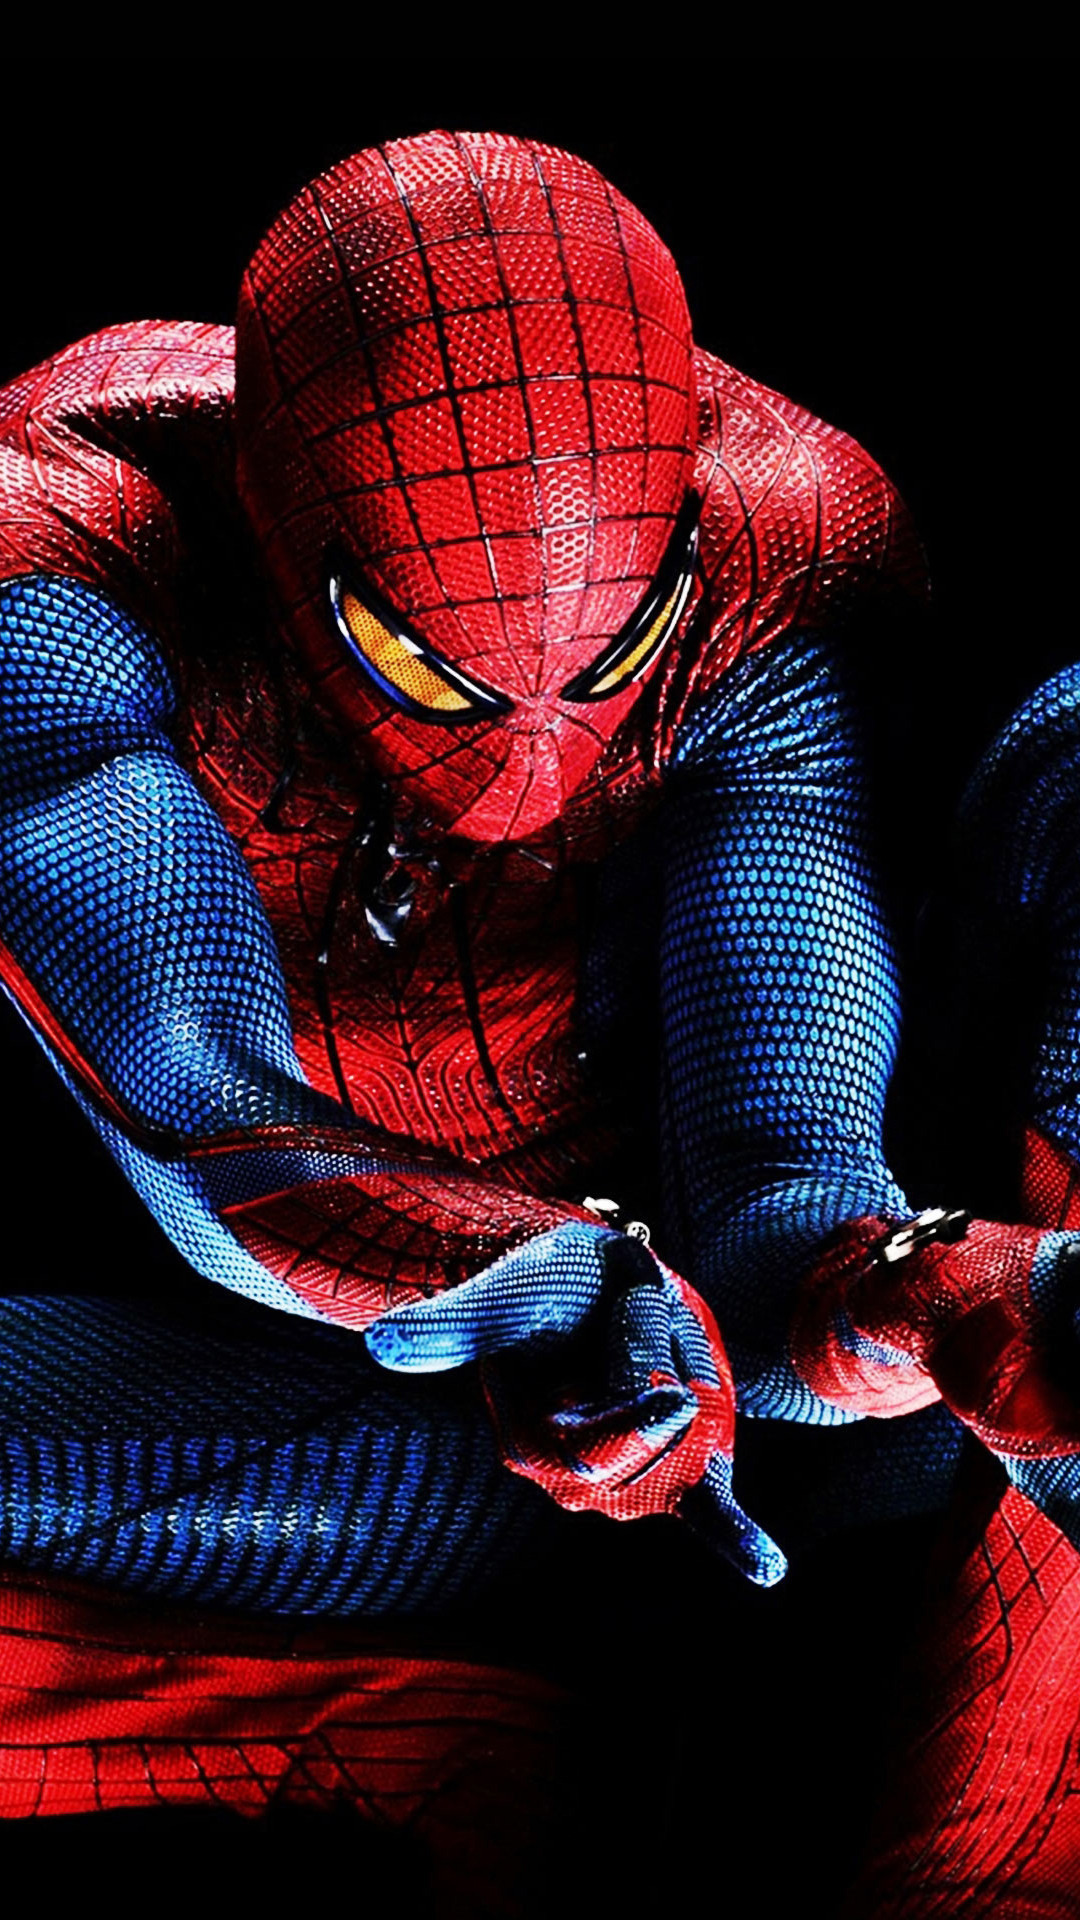 Free Download Spiderman Image for Iphone.